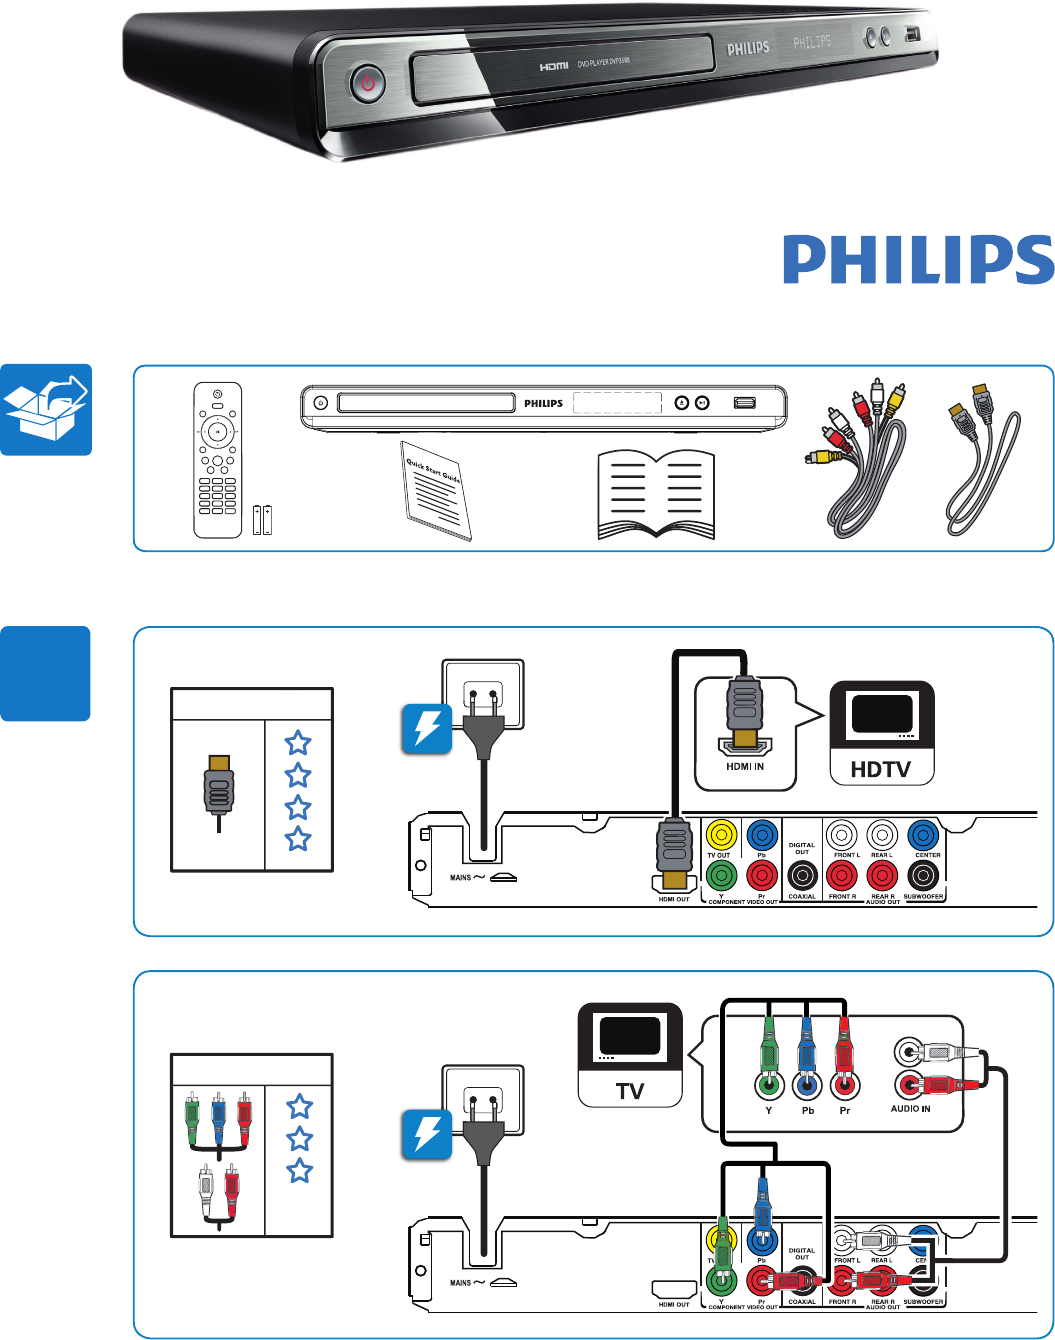 philips dvd player dvp3588 user guide. Black Bedroom Furniture Sets. Home Design Ideas